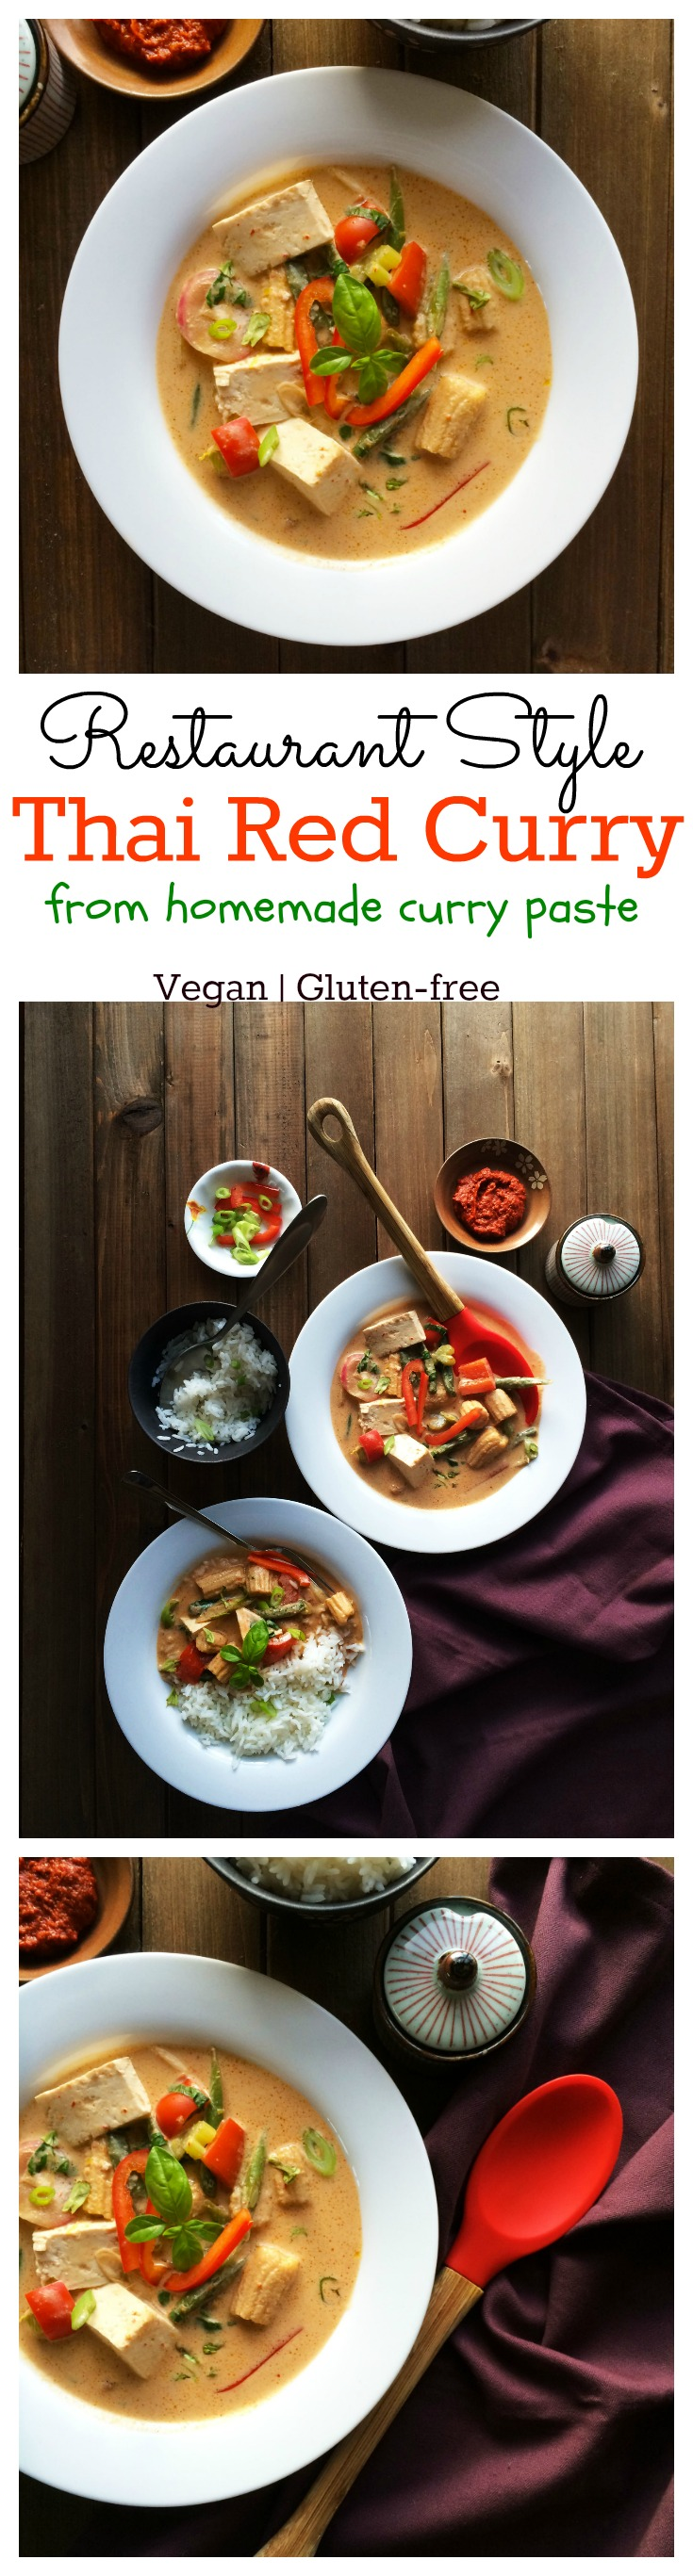 restaurant-style-vegan-thai-red-curry